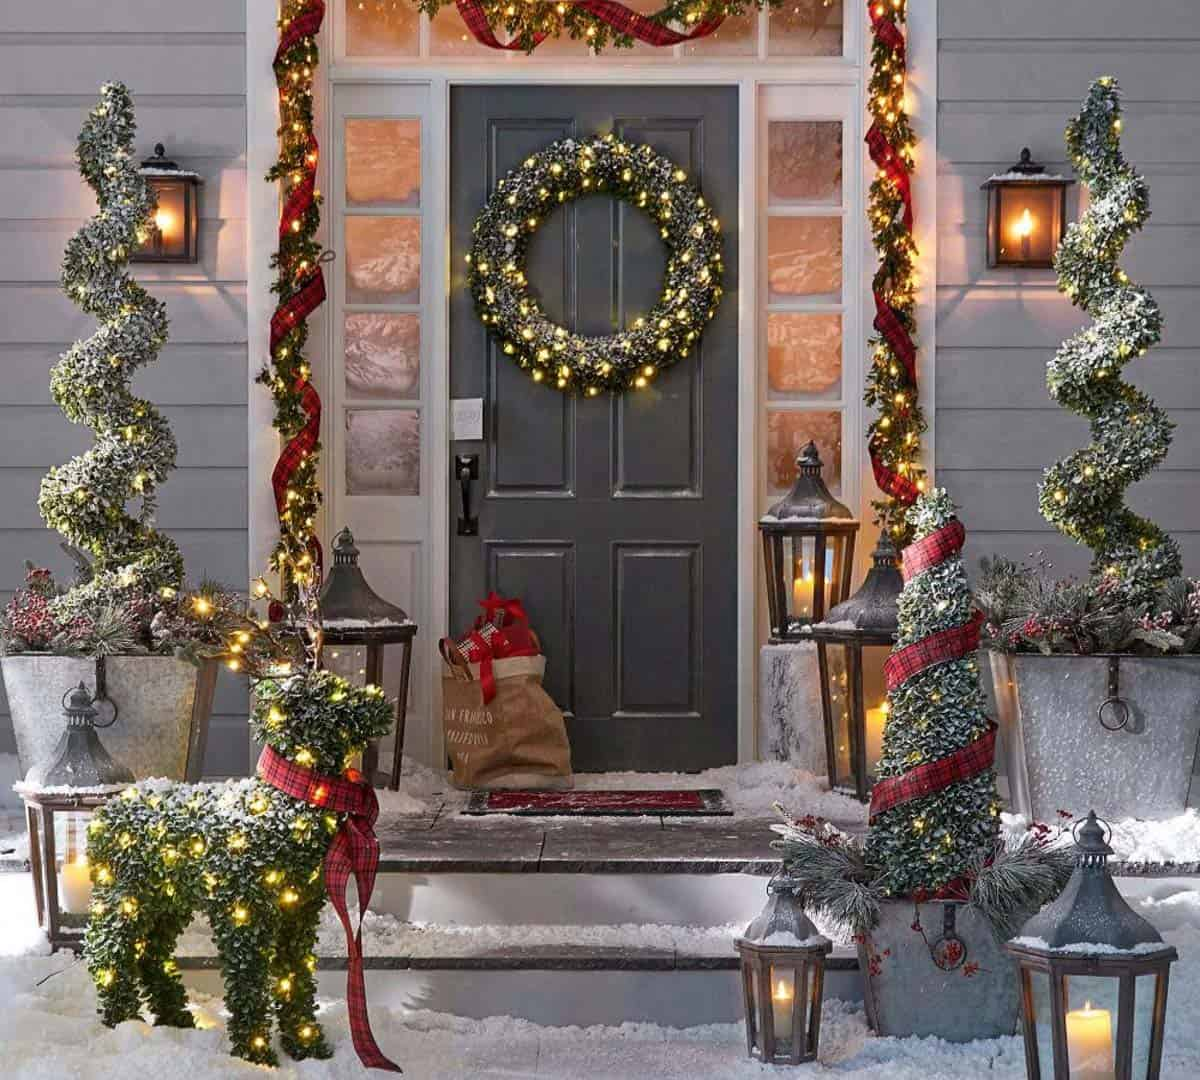 28 Wonderful Christmas decorating ideas for magical outdoor